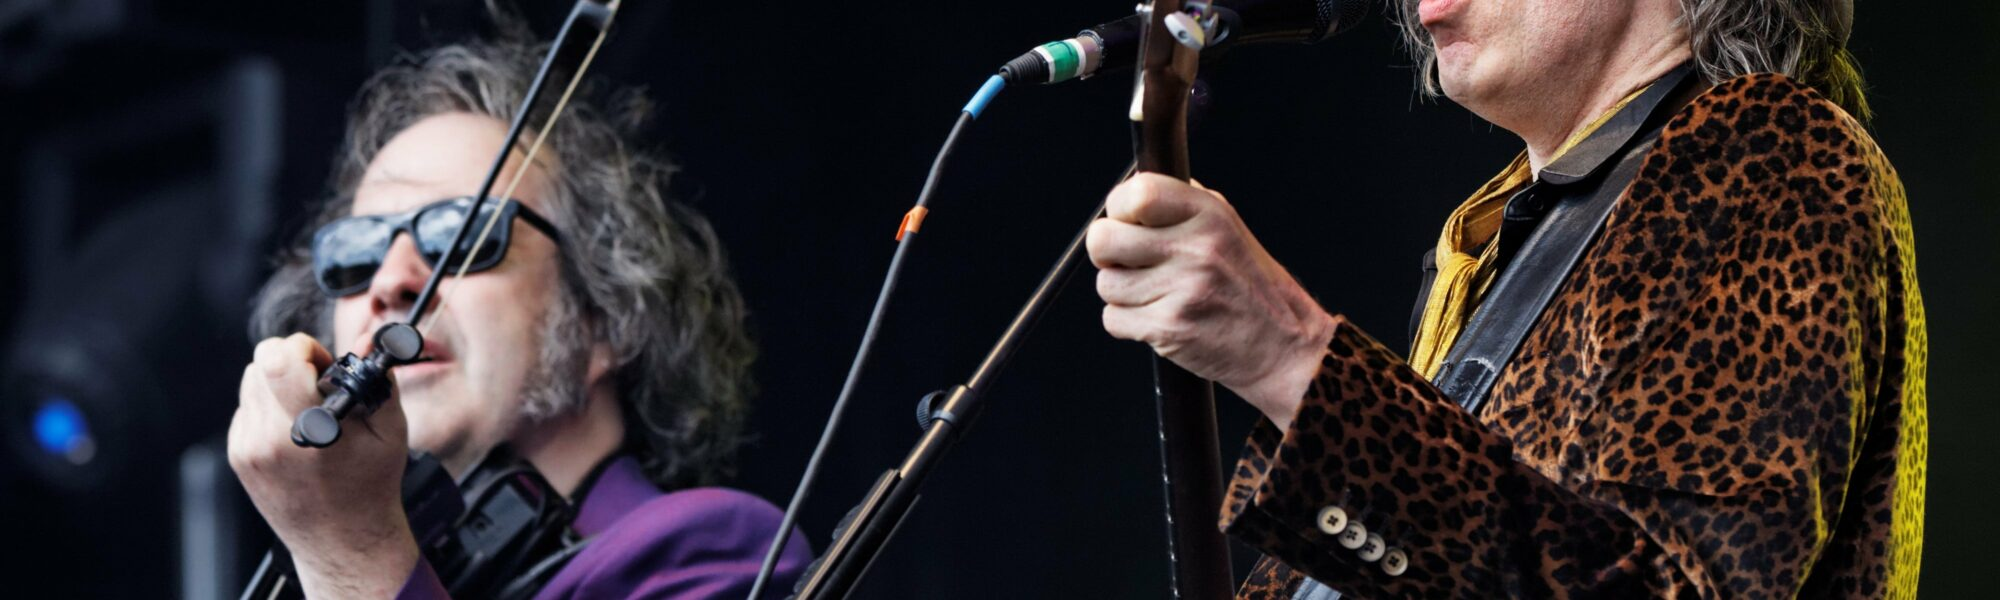 Les Waterboys - Thesupermat - cc